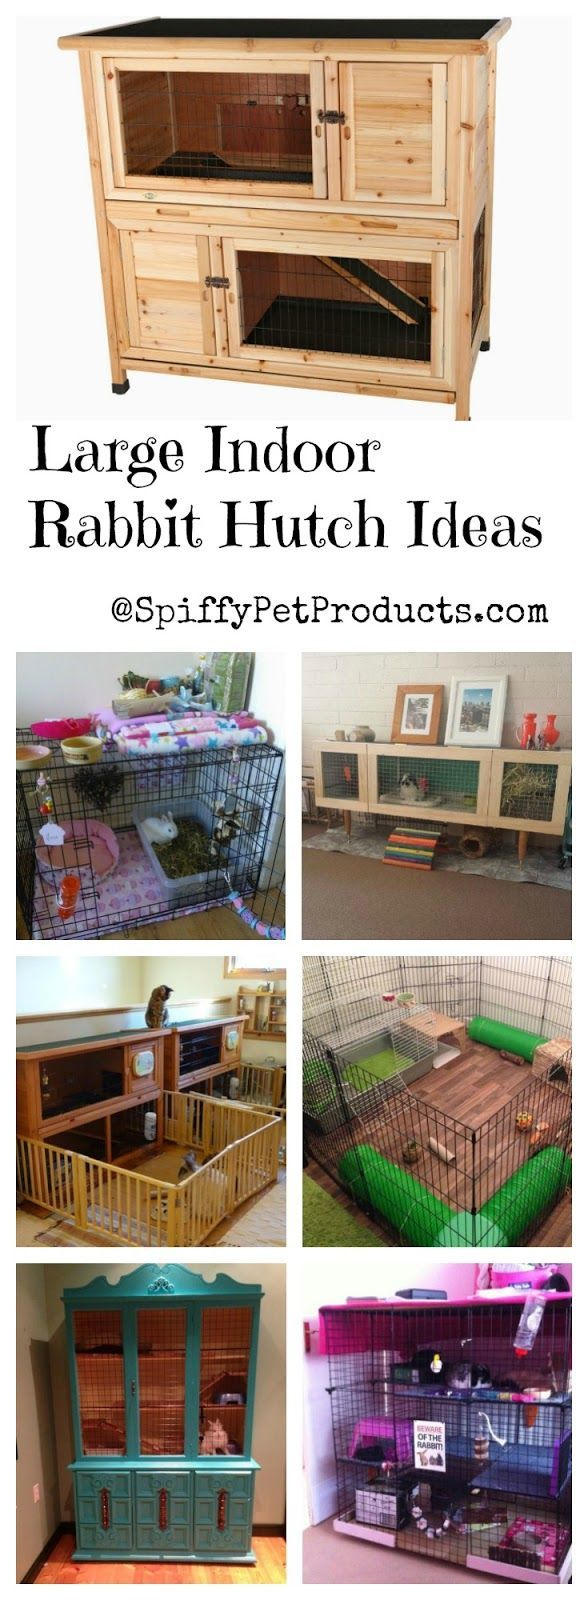 Spiffy Large Indoor Rabbit Hutch Ideas For Keeping Your Pet Rabbit Happy & Healthy!